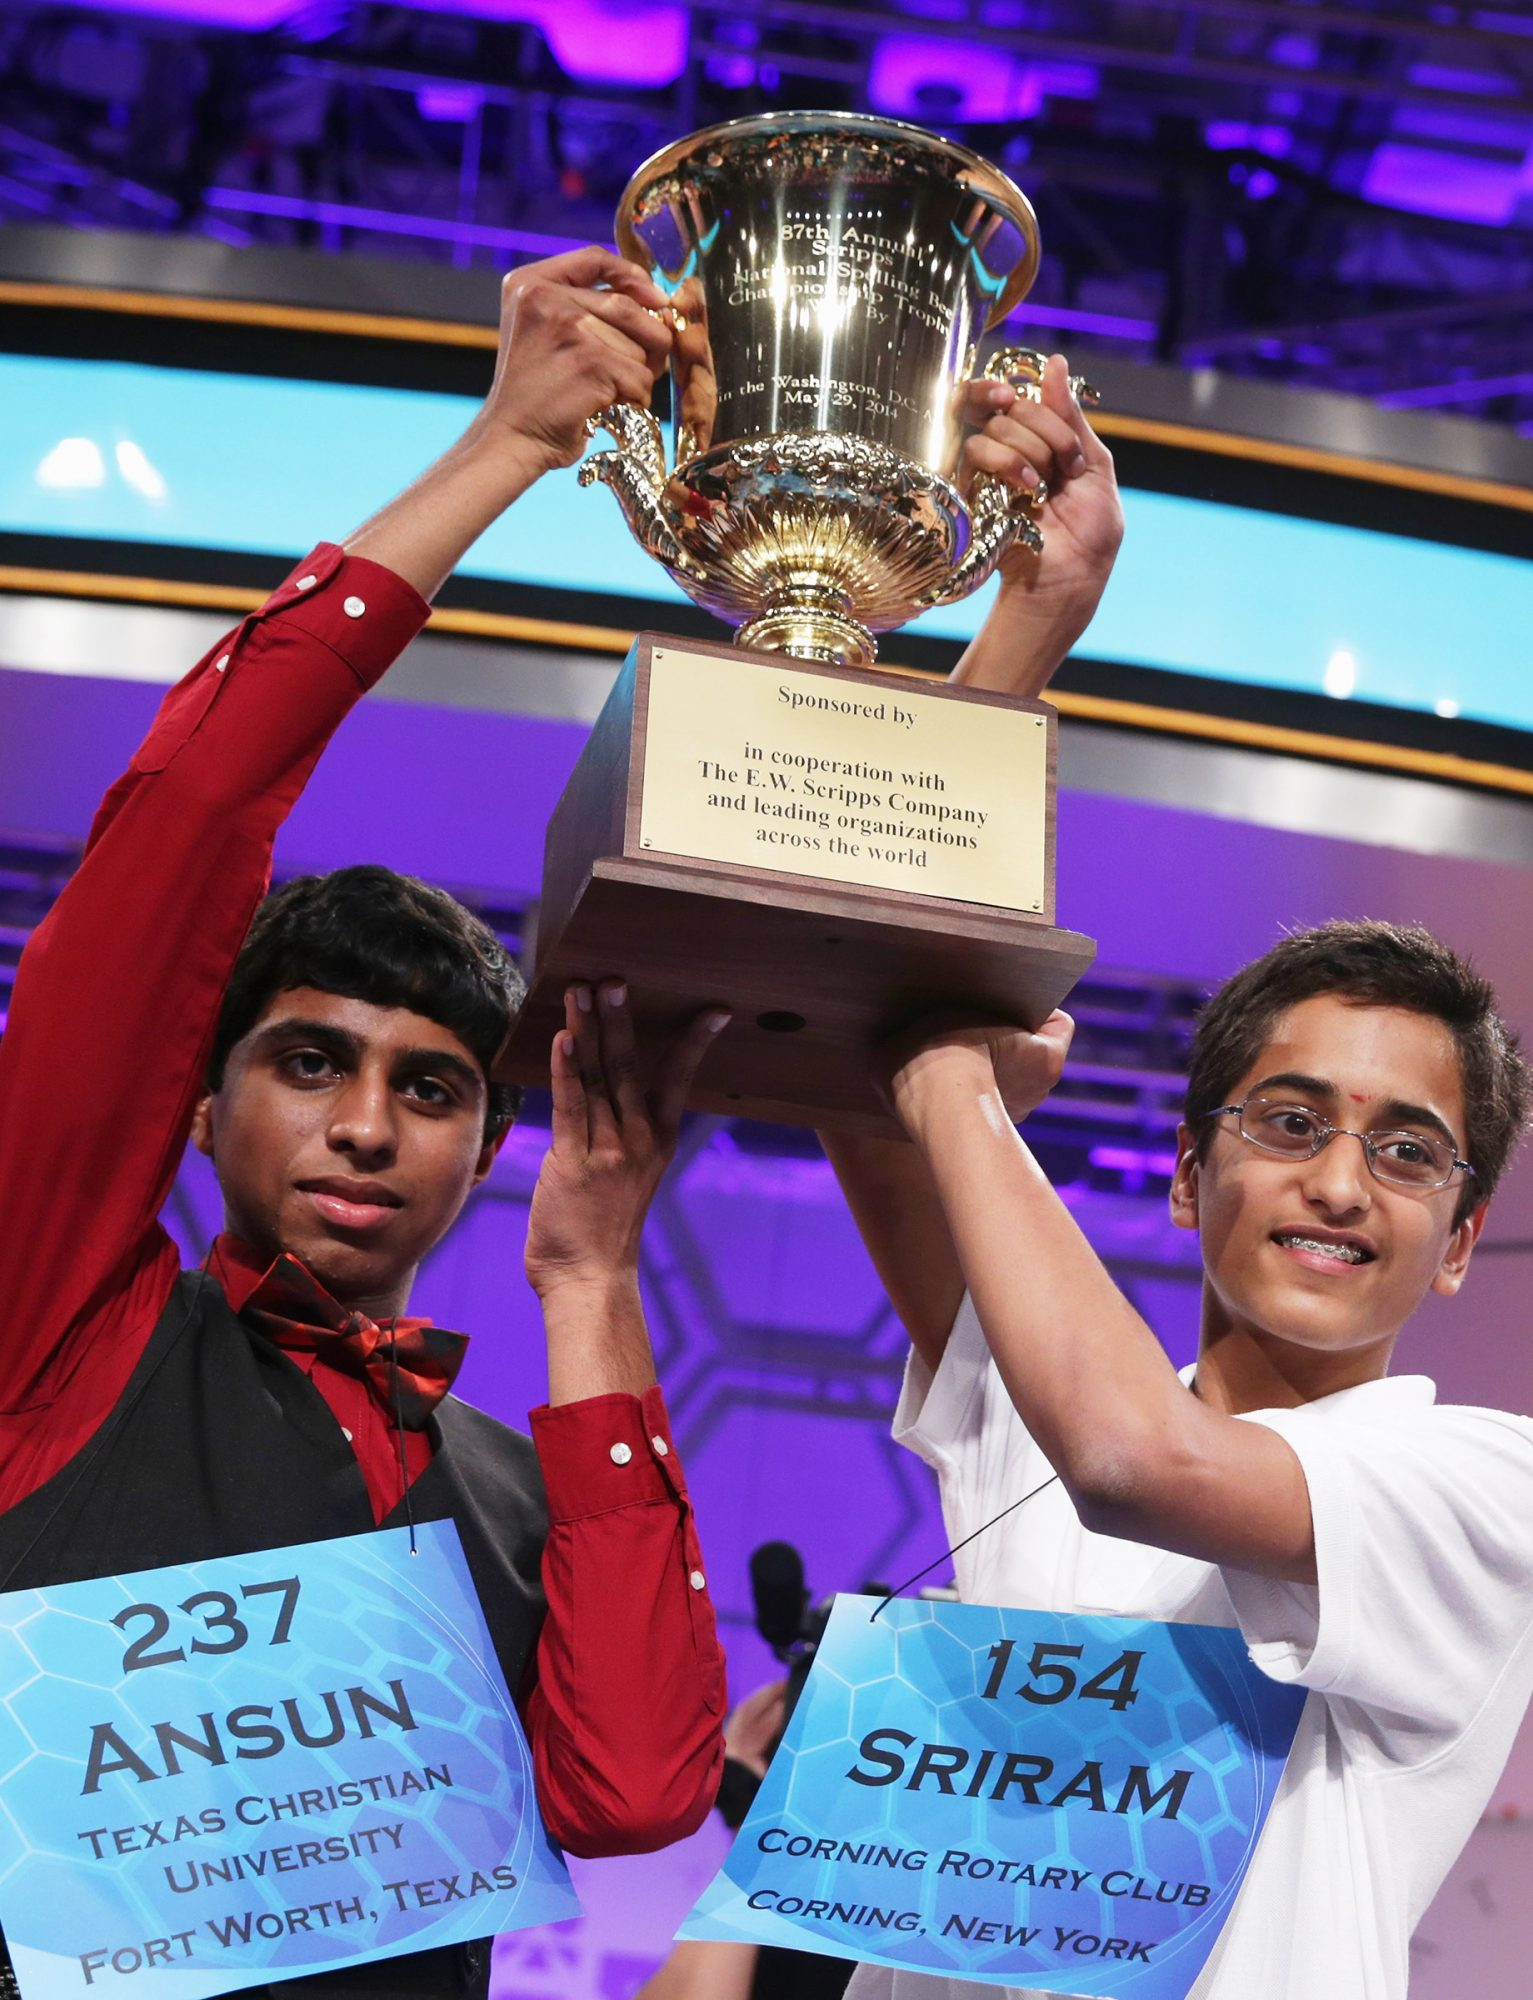 Sriram Hathwar (R) of Painted Post, New York and Ansun Sujoe (L) of Fort Worth, Texas hold their trophy at the end of the 2014 Scripps National Spelling Bee competition May 29, 2014 in National Harbor, Maryland. Hathwar and Sujoe were declared as co-champions after 22 rounds of the competition